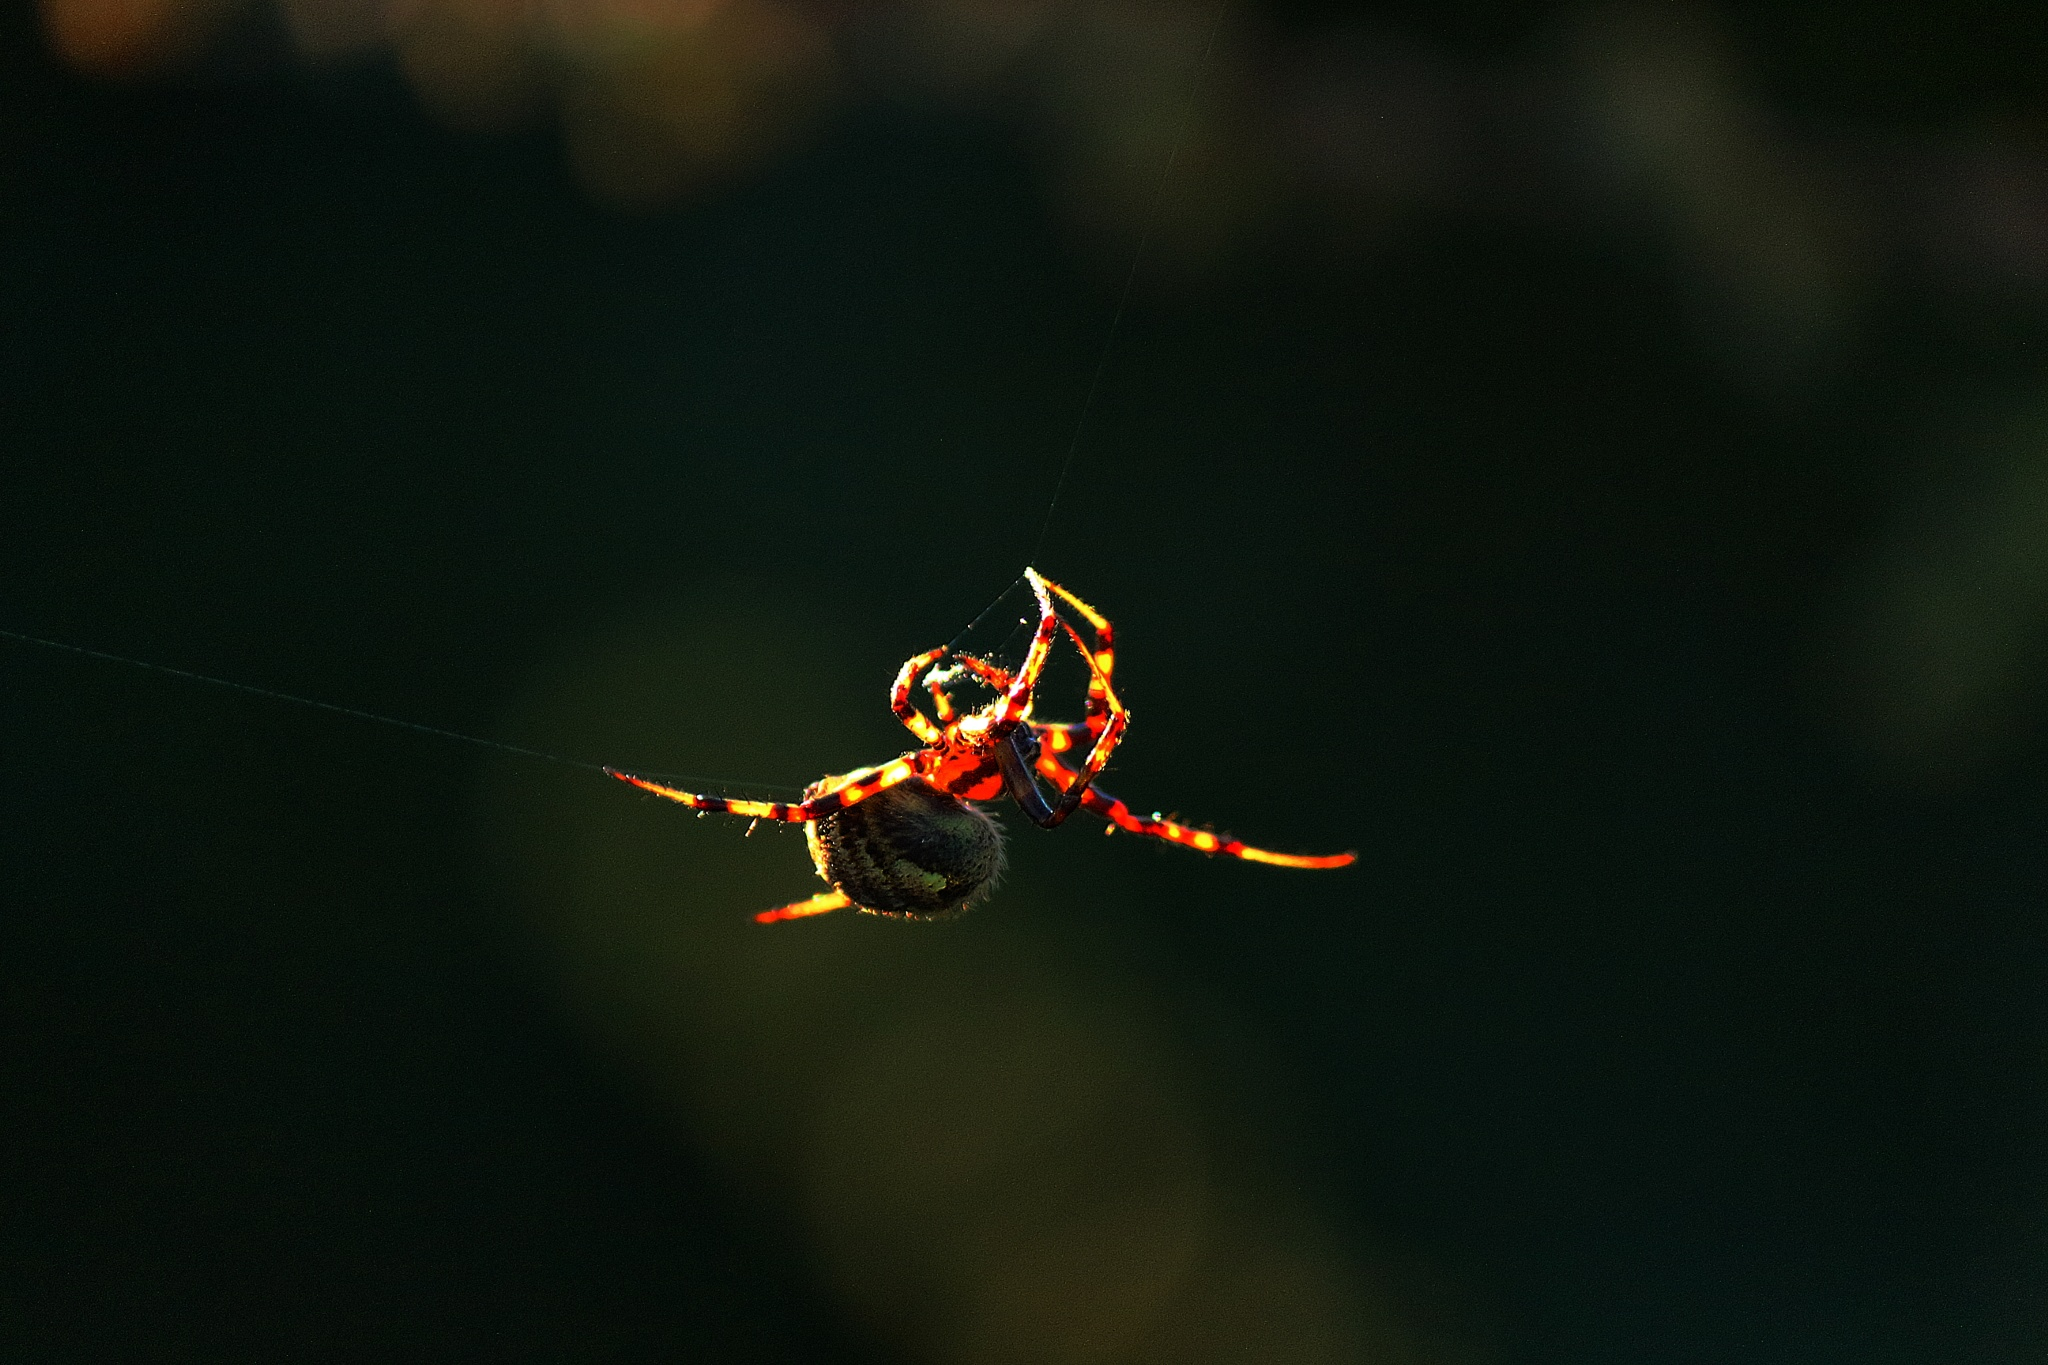 Spider in the evening sun light by Clark L. Roberts